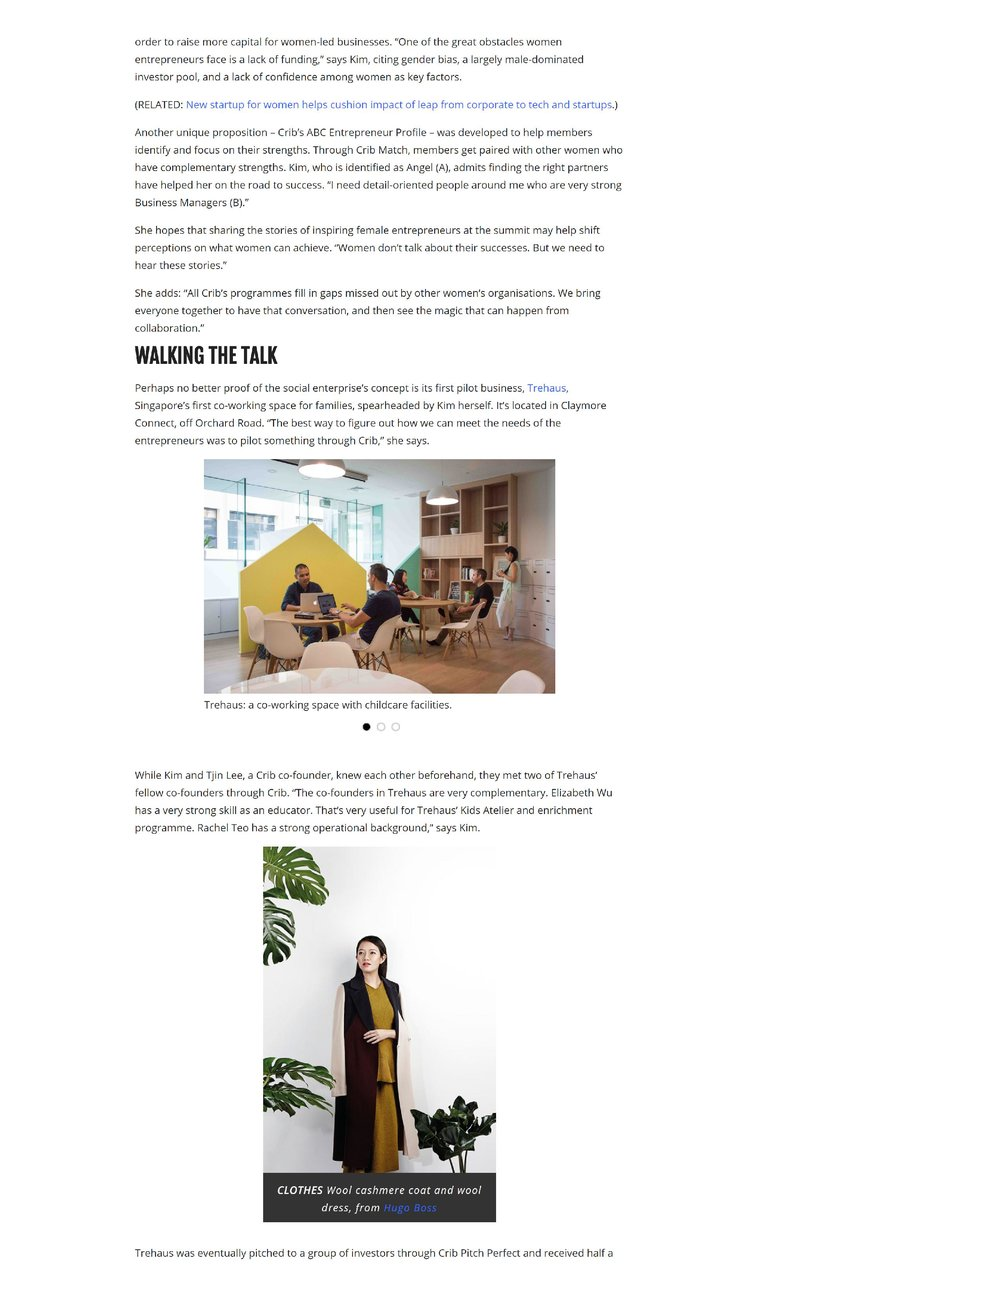 screencapture-thepeakmagazine-sg-interviews-crib-co-founder-elaine-kim-empowering-womens-dreams-entrepreneurship-2018-09-13-19_32_12-page-003.jpg